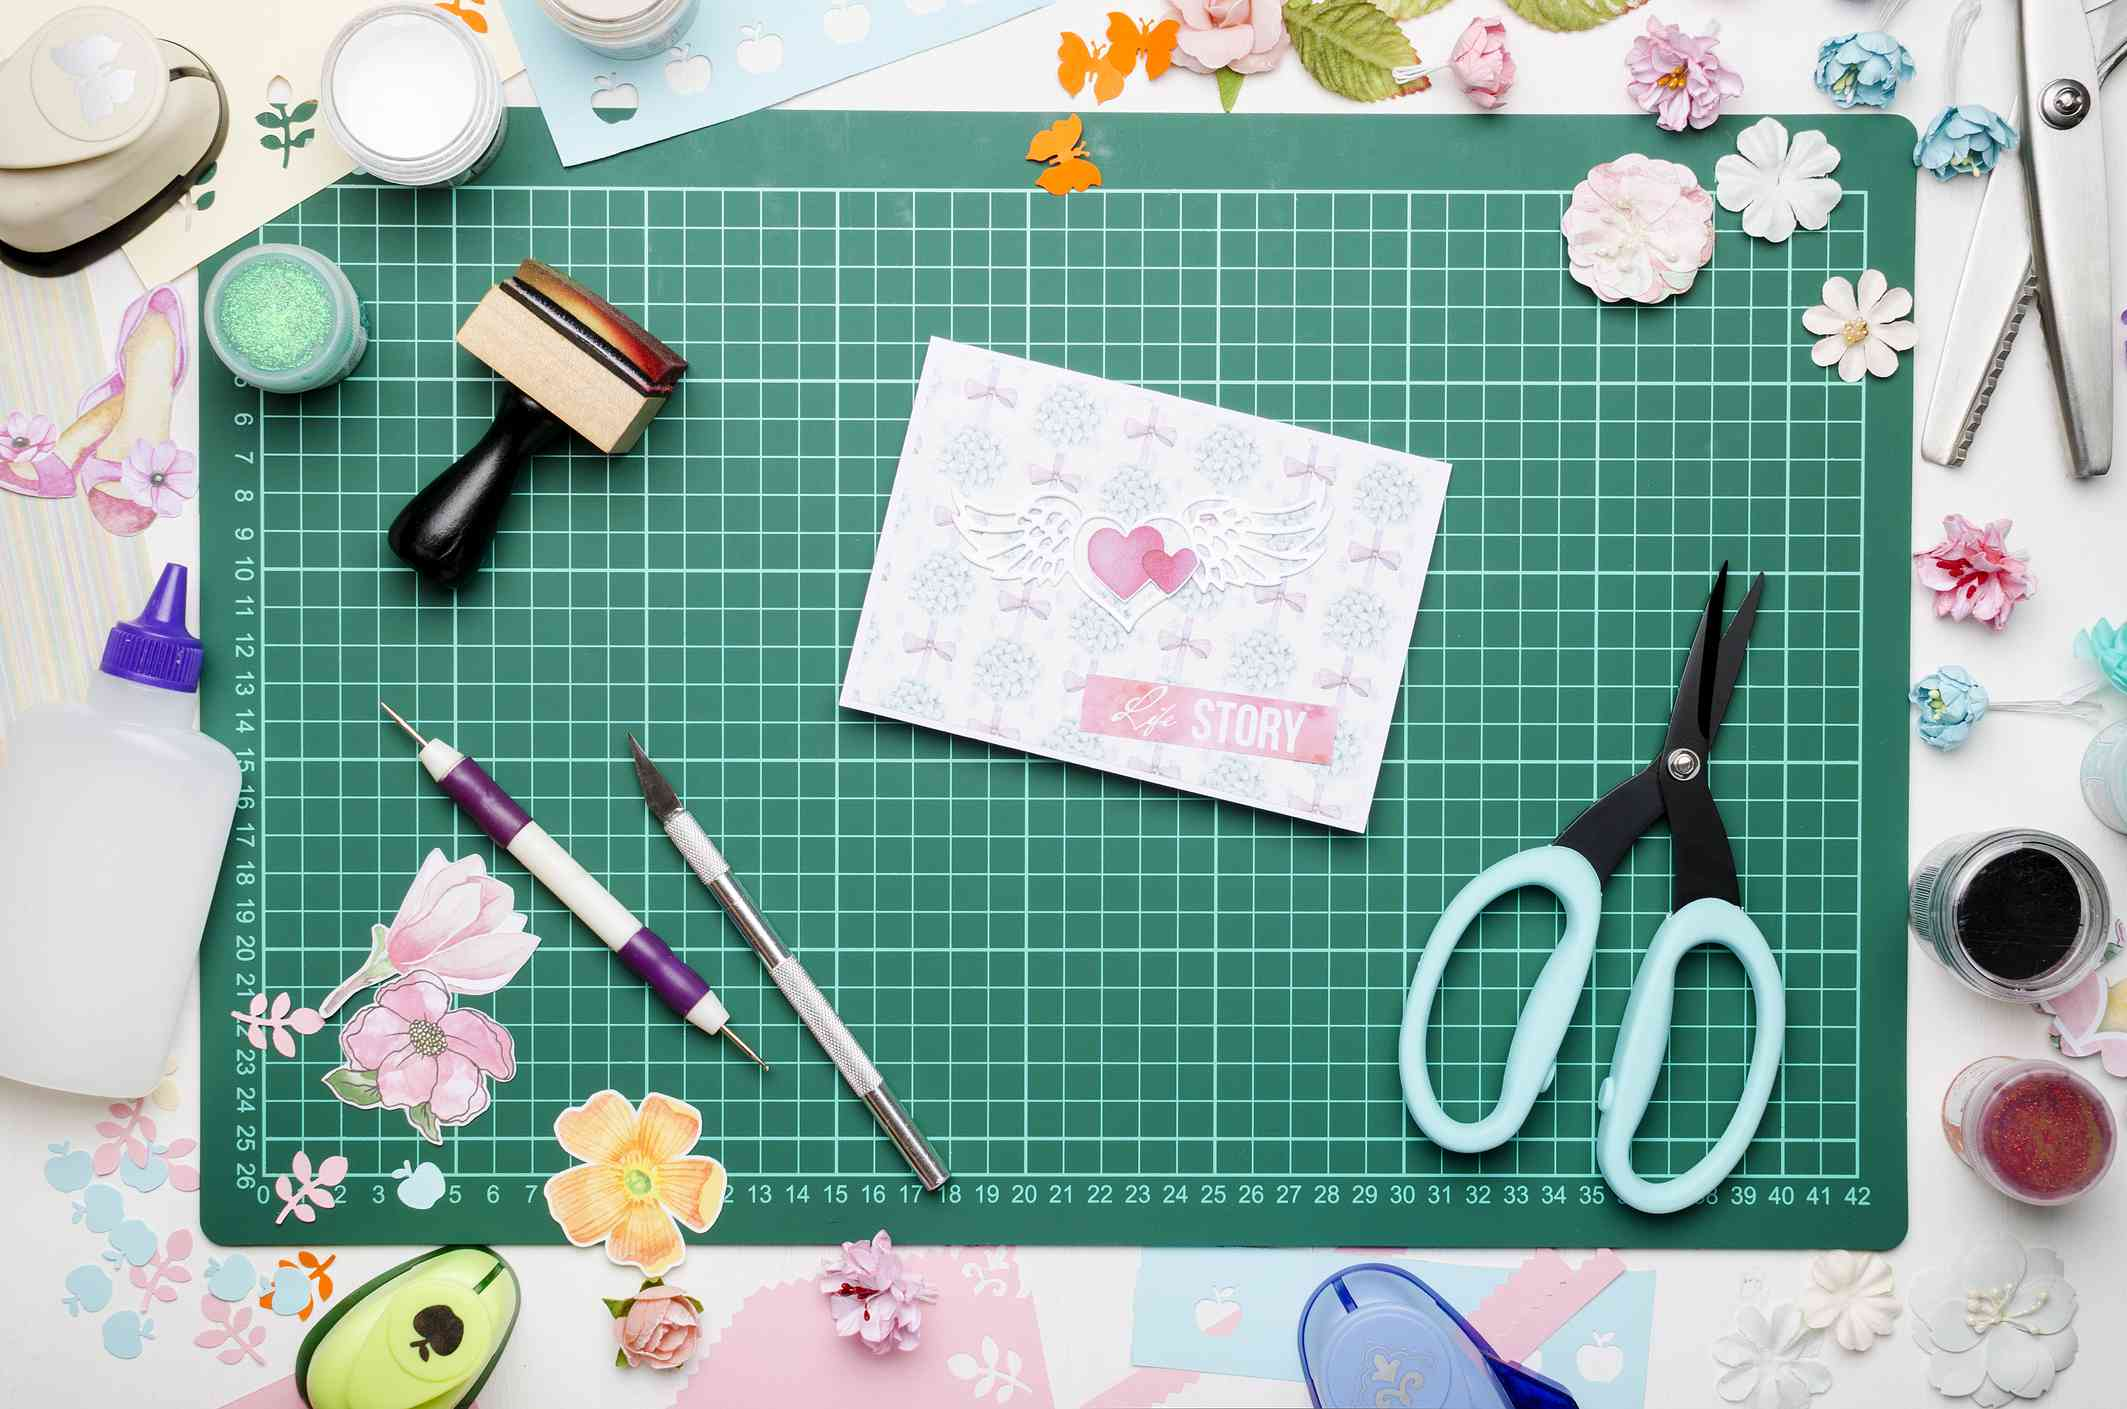 greeting card on green cutting mat, scrapbooking tools and materials